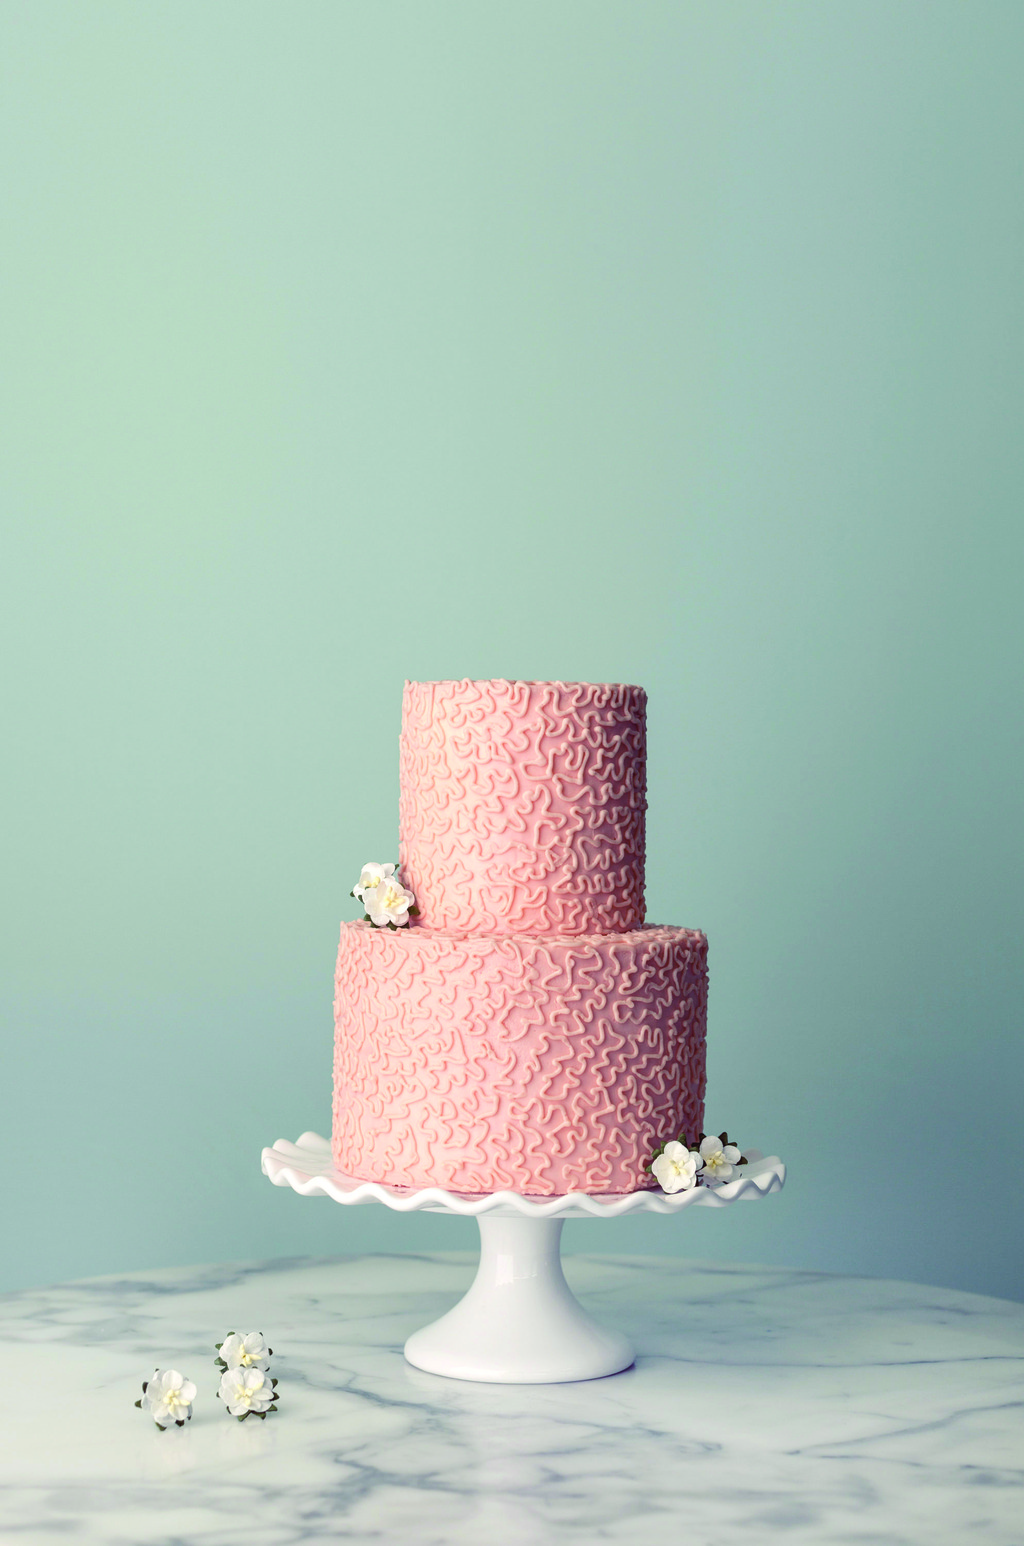 Small Wedding Cakes for Intimate Ceremonies Elopements